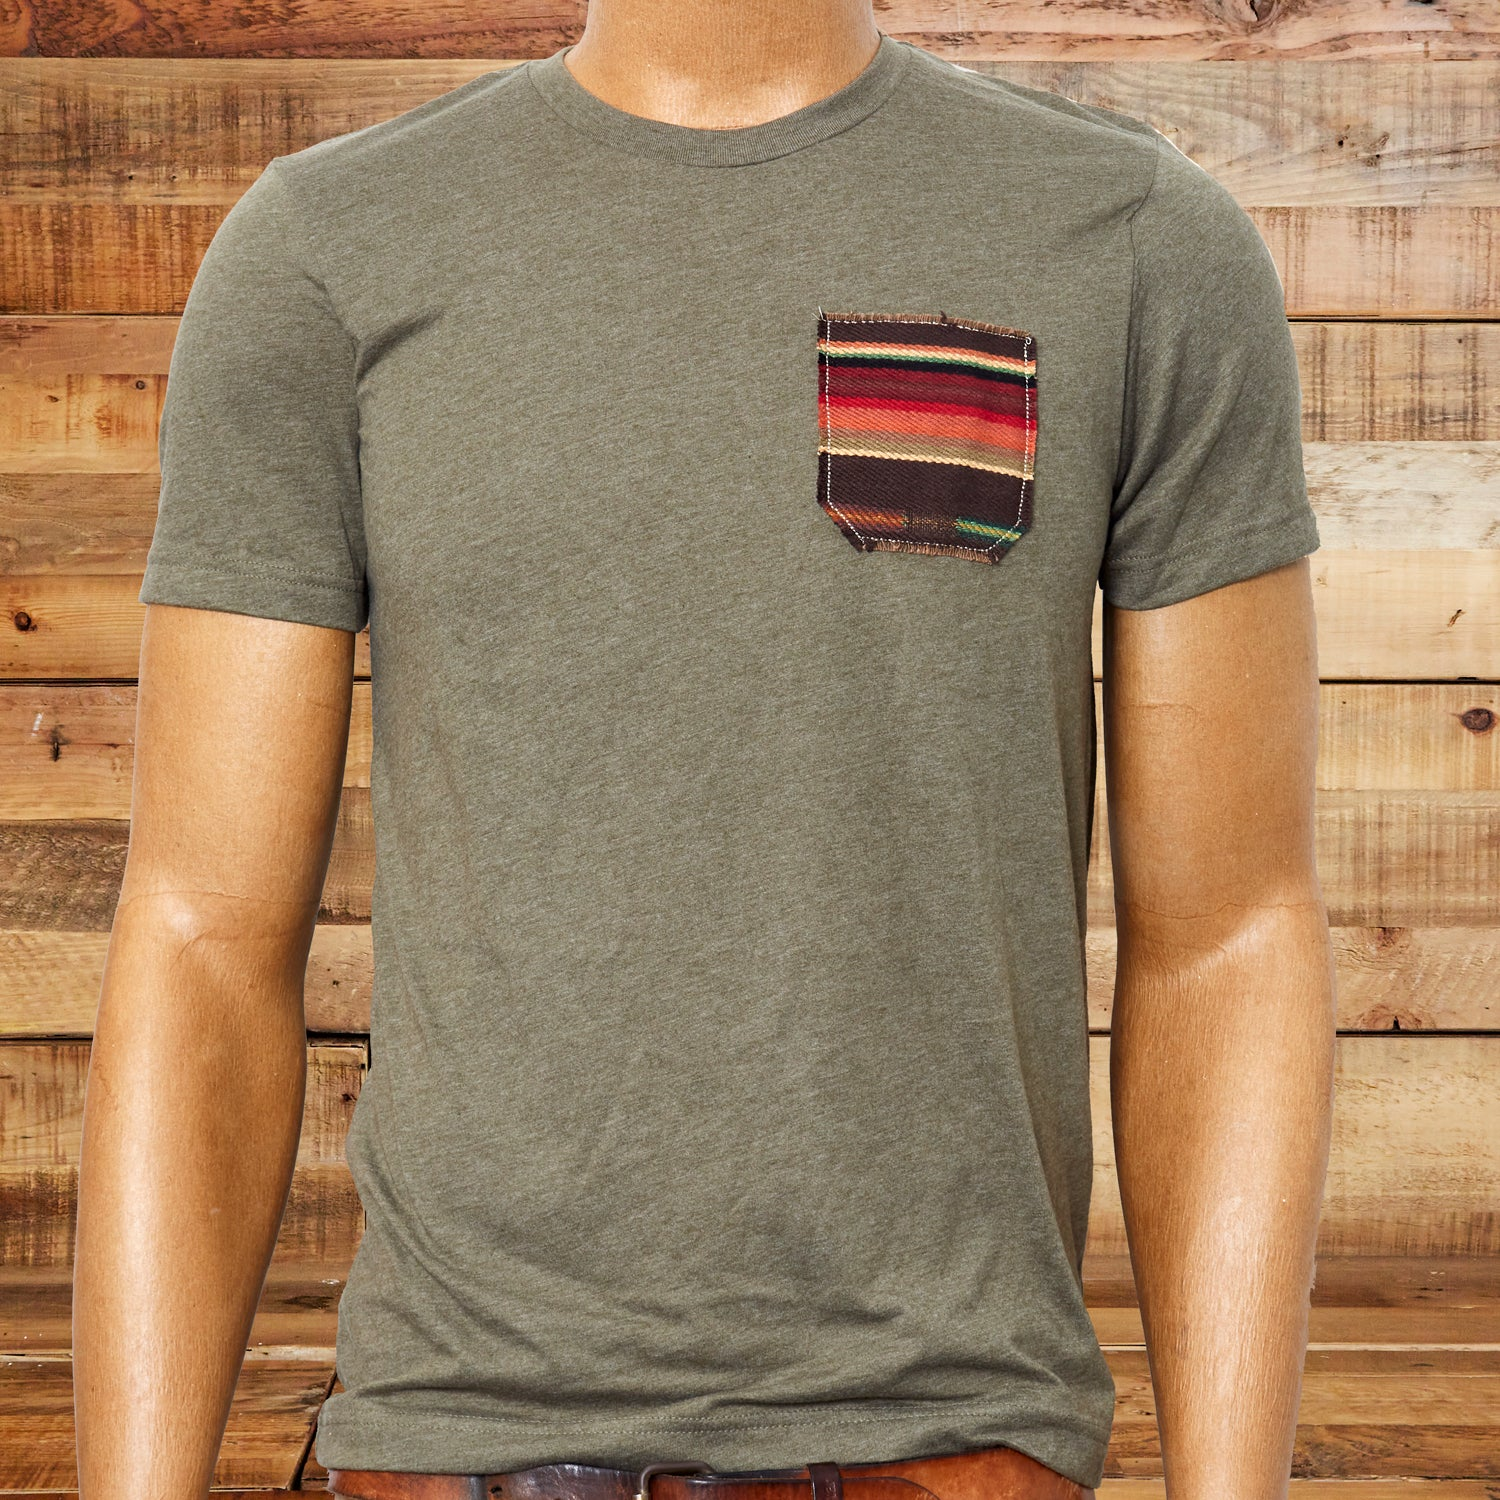 ADKTD Mens Pocket Tee, Military